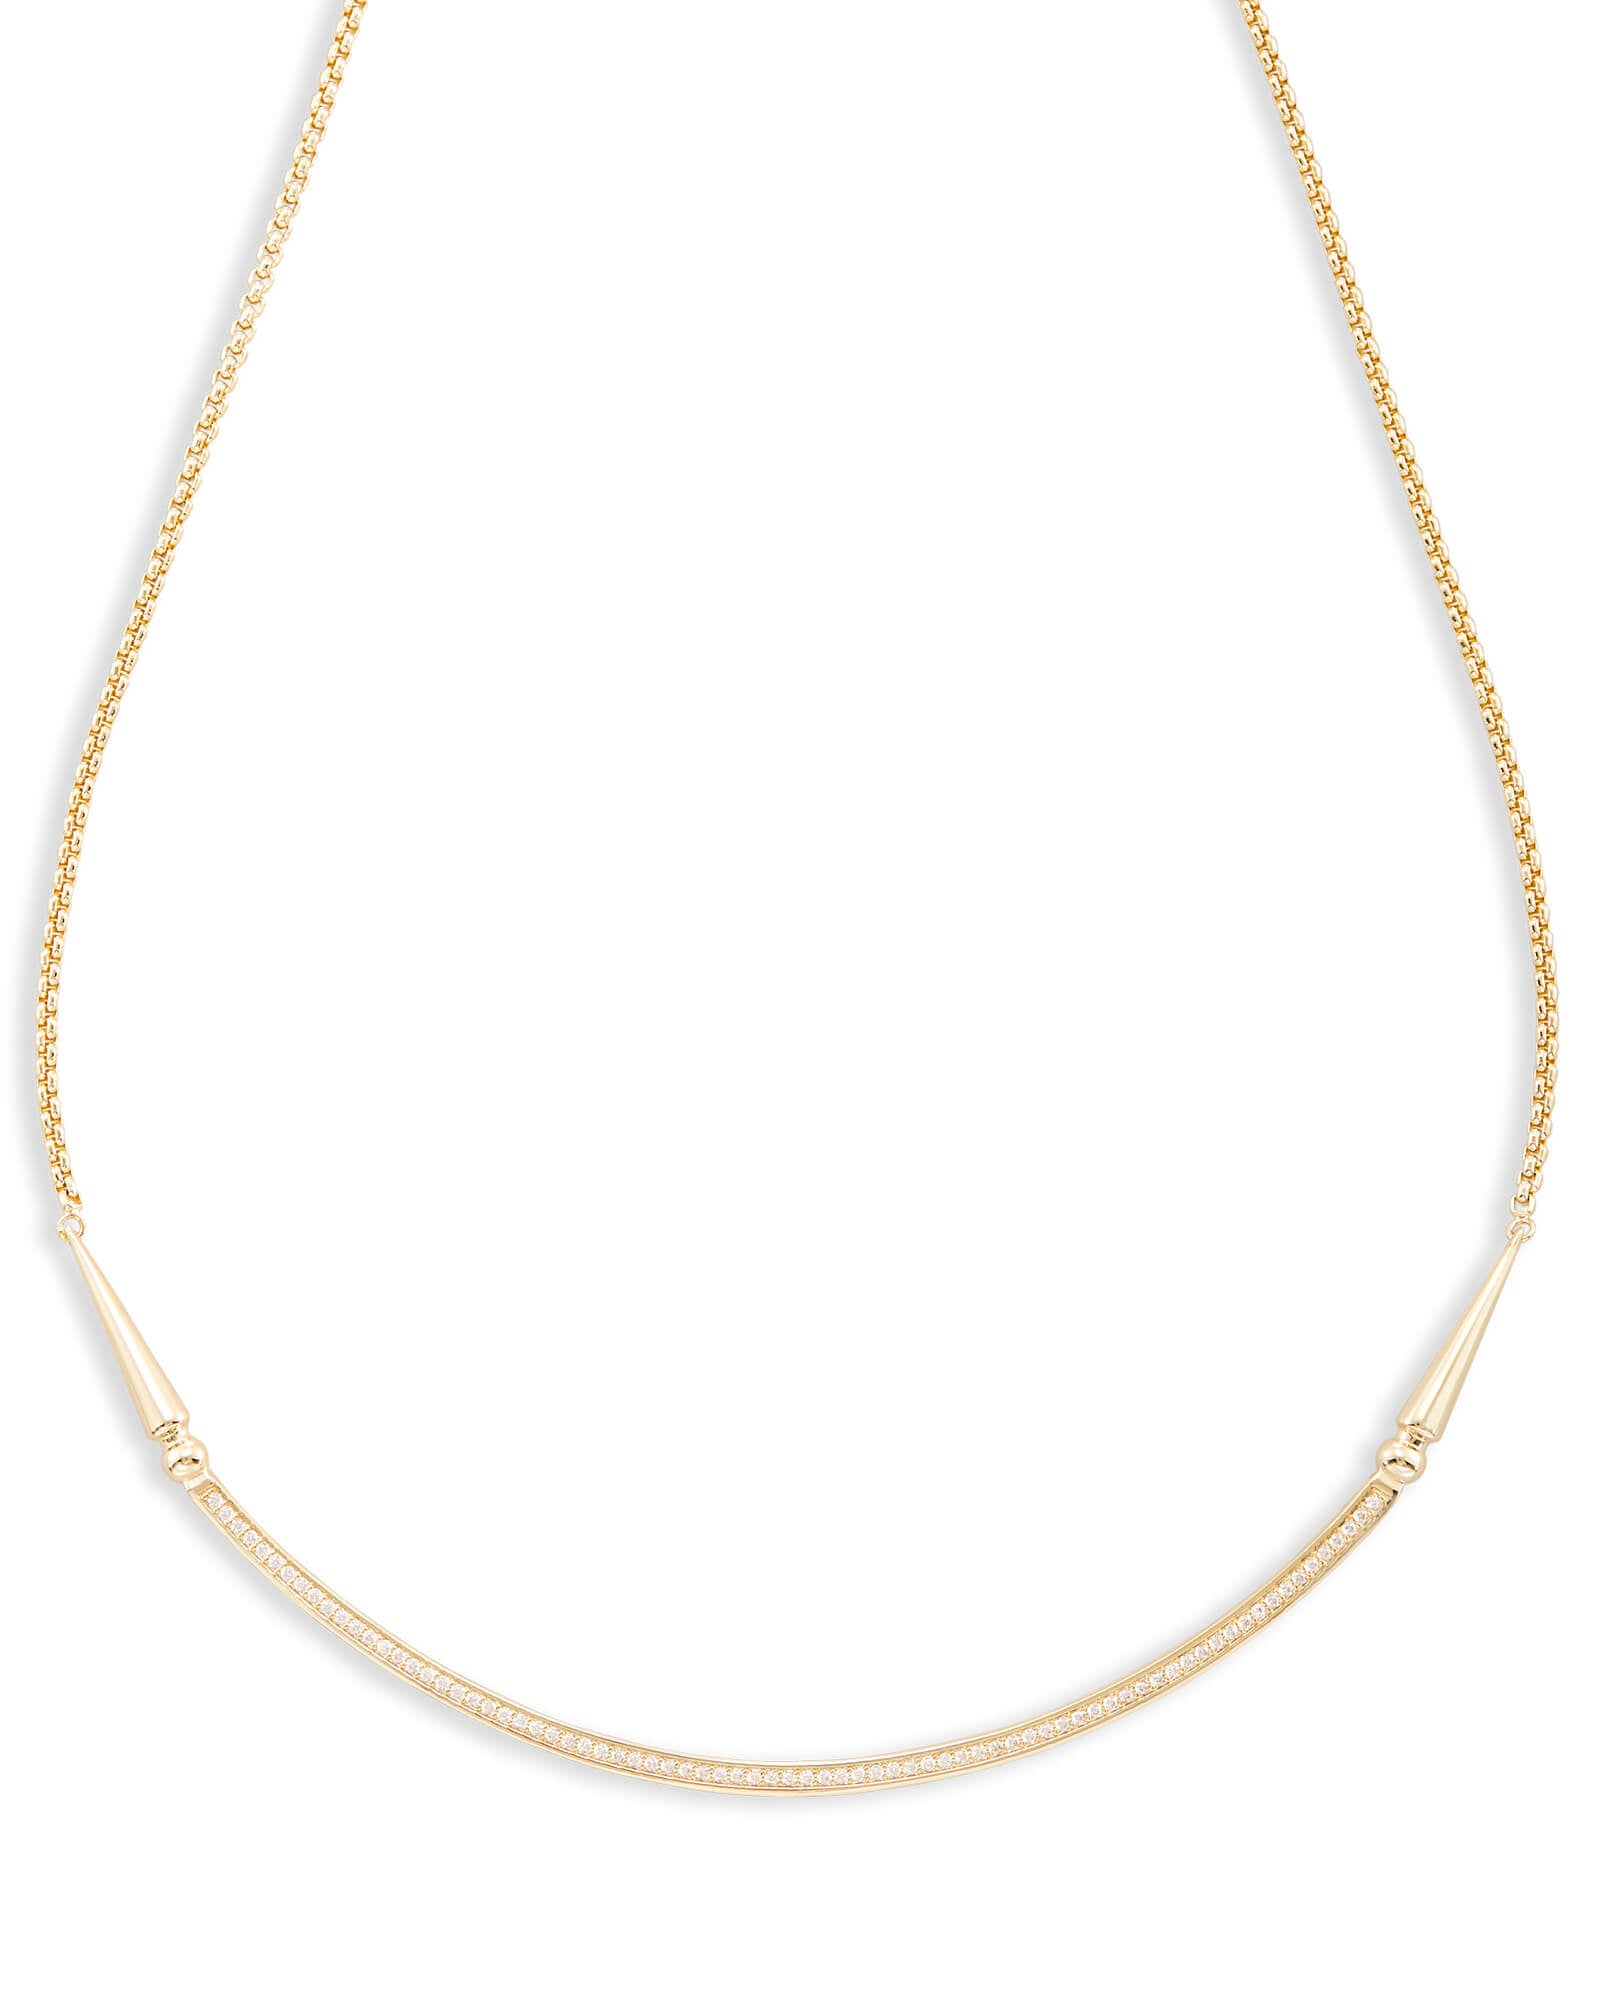 Kendra Scott Scottie Choker Necklace In Gold